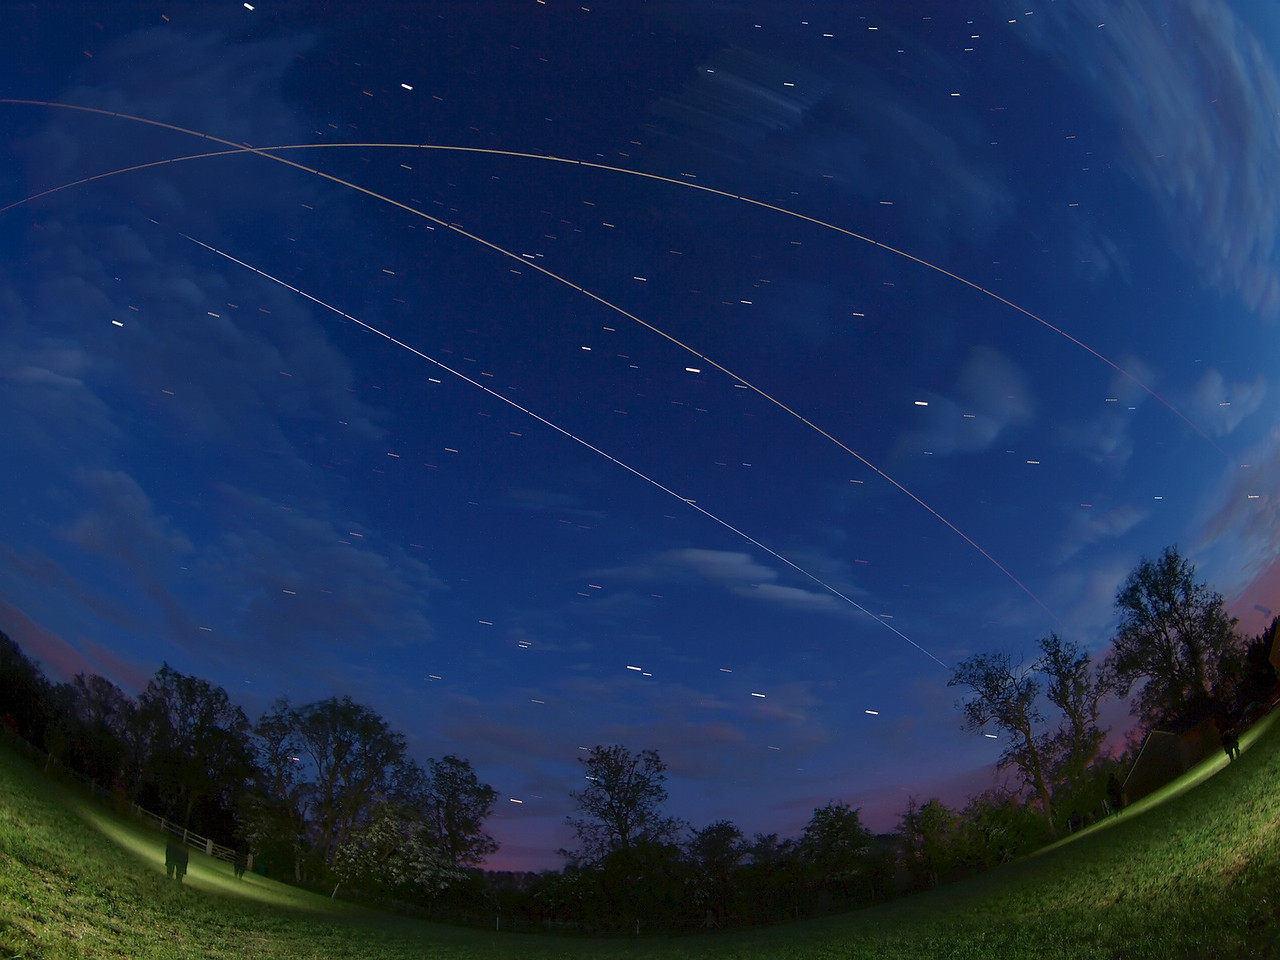 The ISS has been making multiple flybys over UK skies in recent days. Perfect opportunities for capturing multiple composite images, should the weather oblige. Sadly we have had much cloud over the last week, but on 6 & 7 June we graced with a few clear sky nights. This composite shows a triple flyby from the 2 nights. The camera was camped out all week on tripod. Olympus E3, 8mm fish, F3.5, 15s  (dozen or so composite for each flyby).   The final composite was put together with StarStax software.